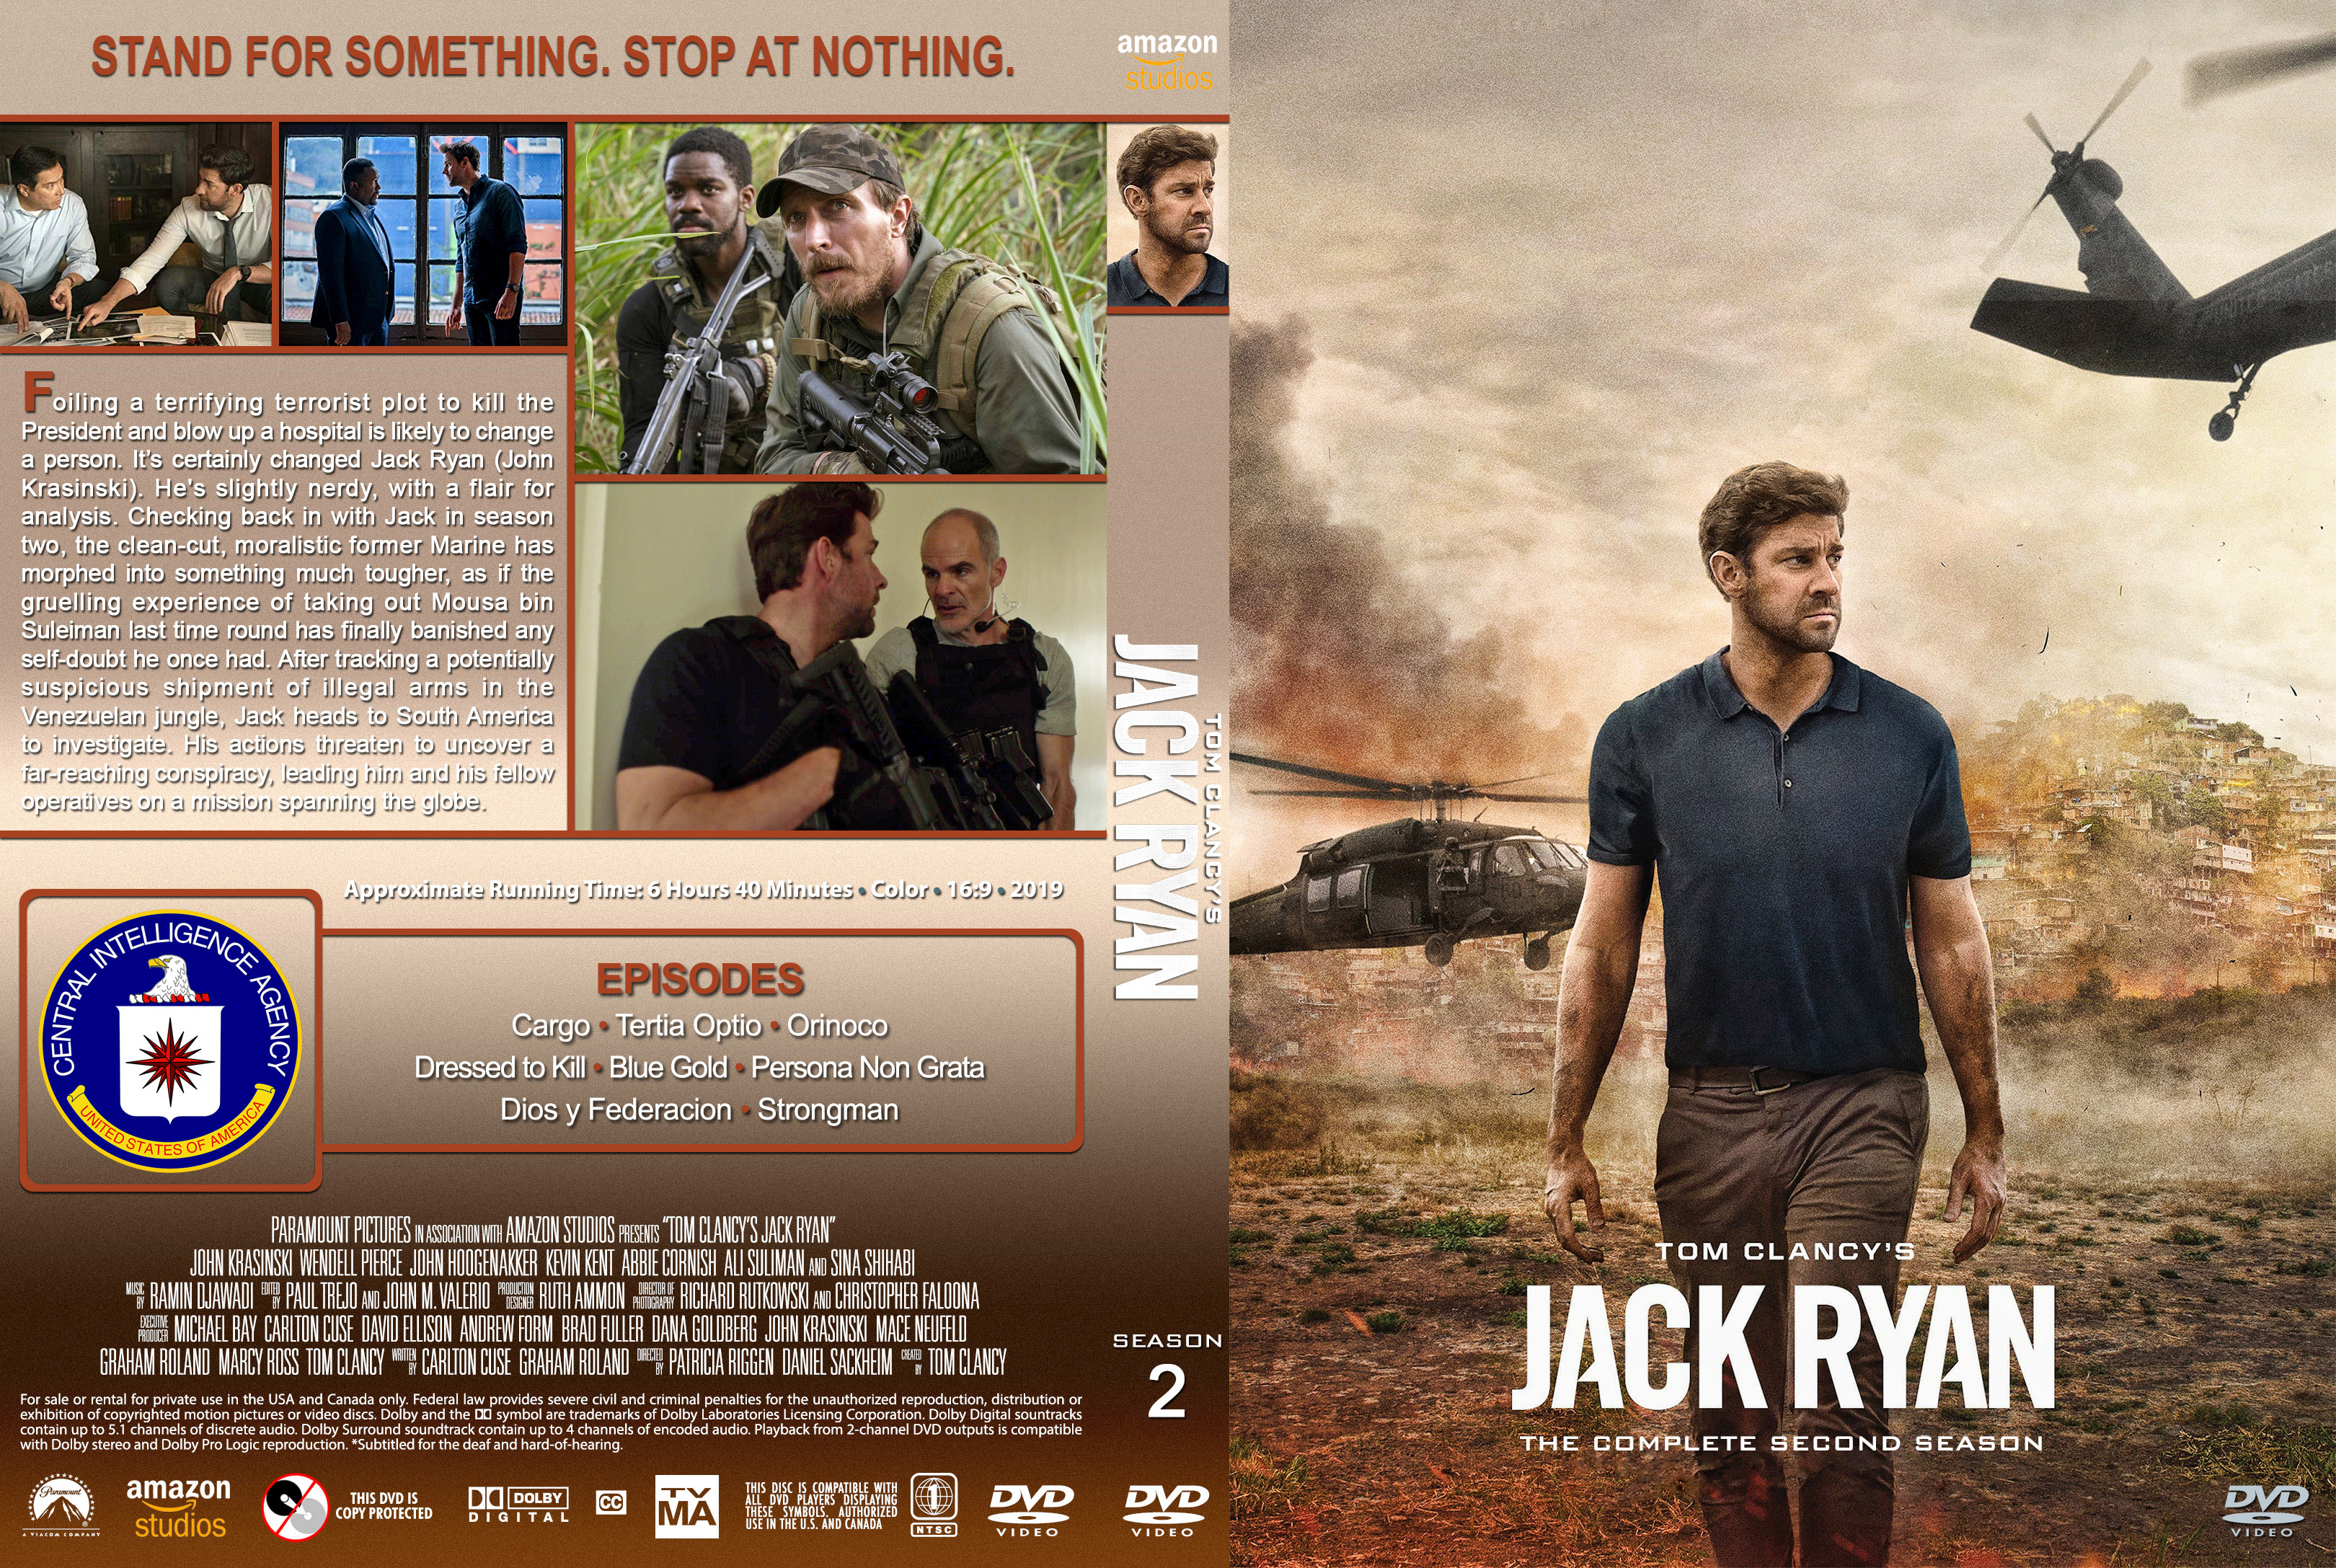 Jack Ryan Season 2 (2019) : Front | DVD Covers | Cover